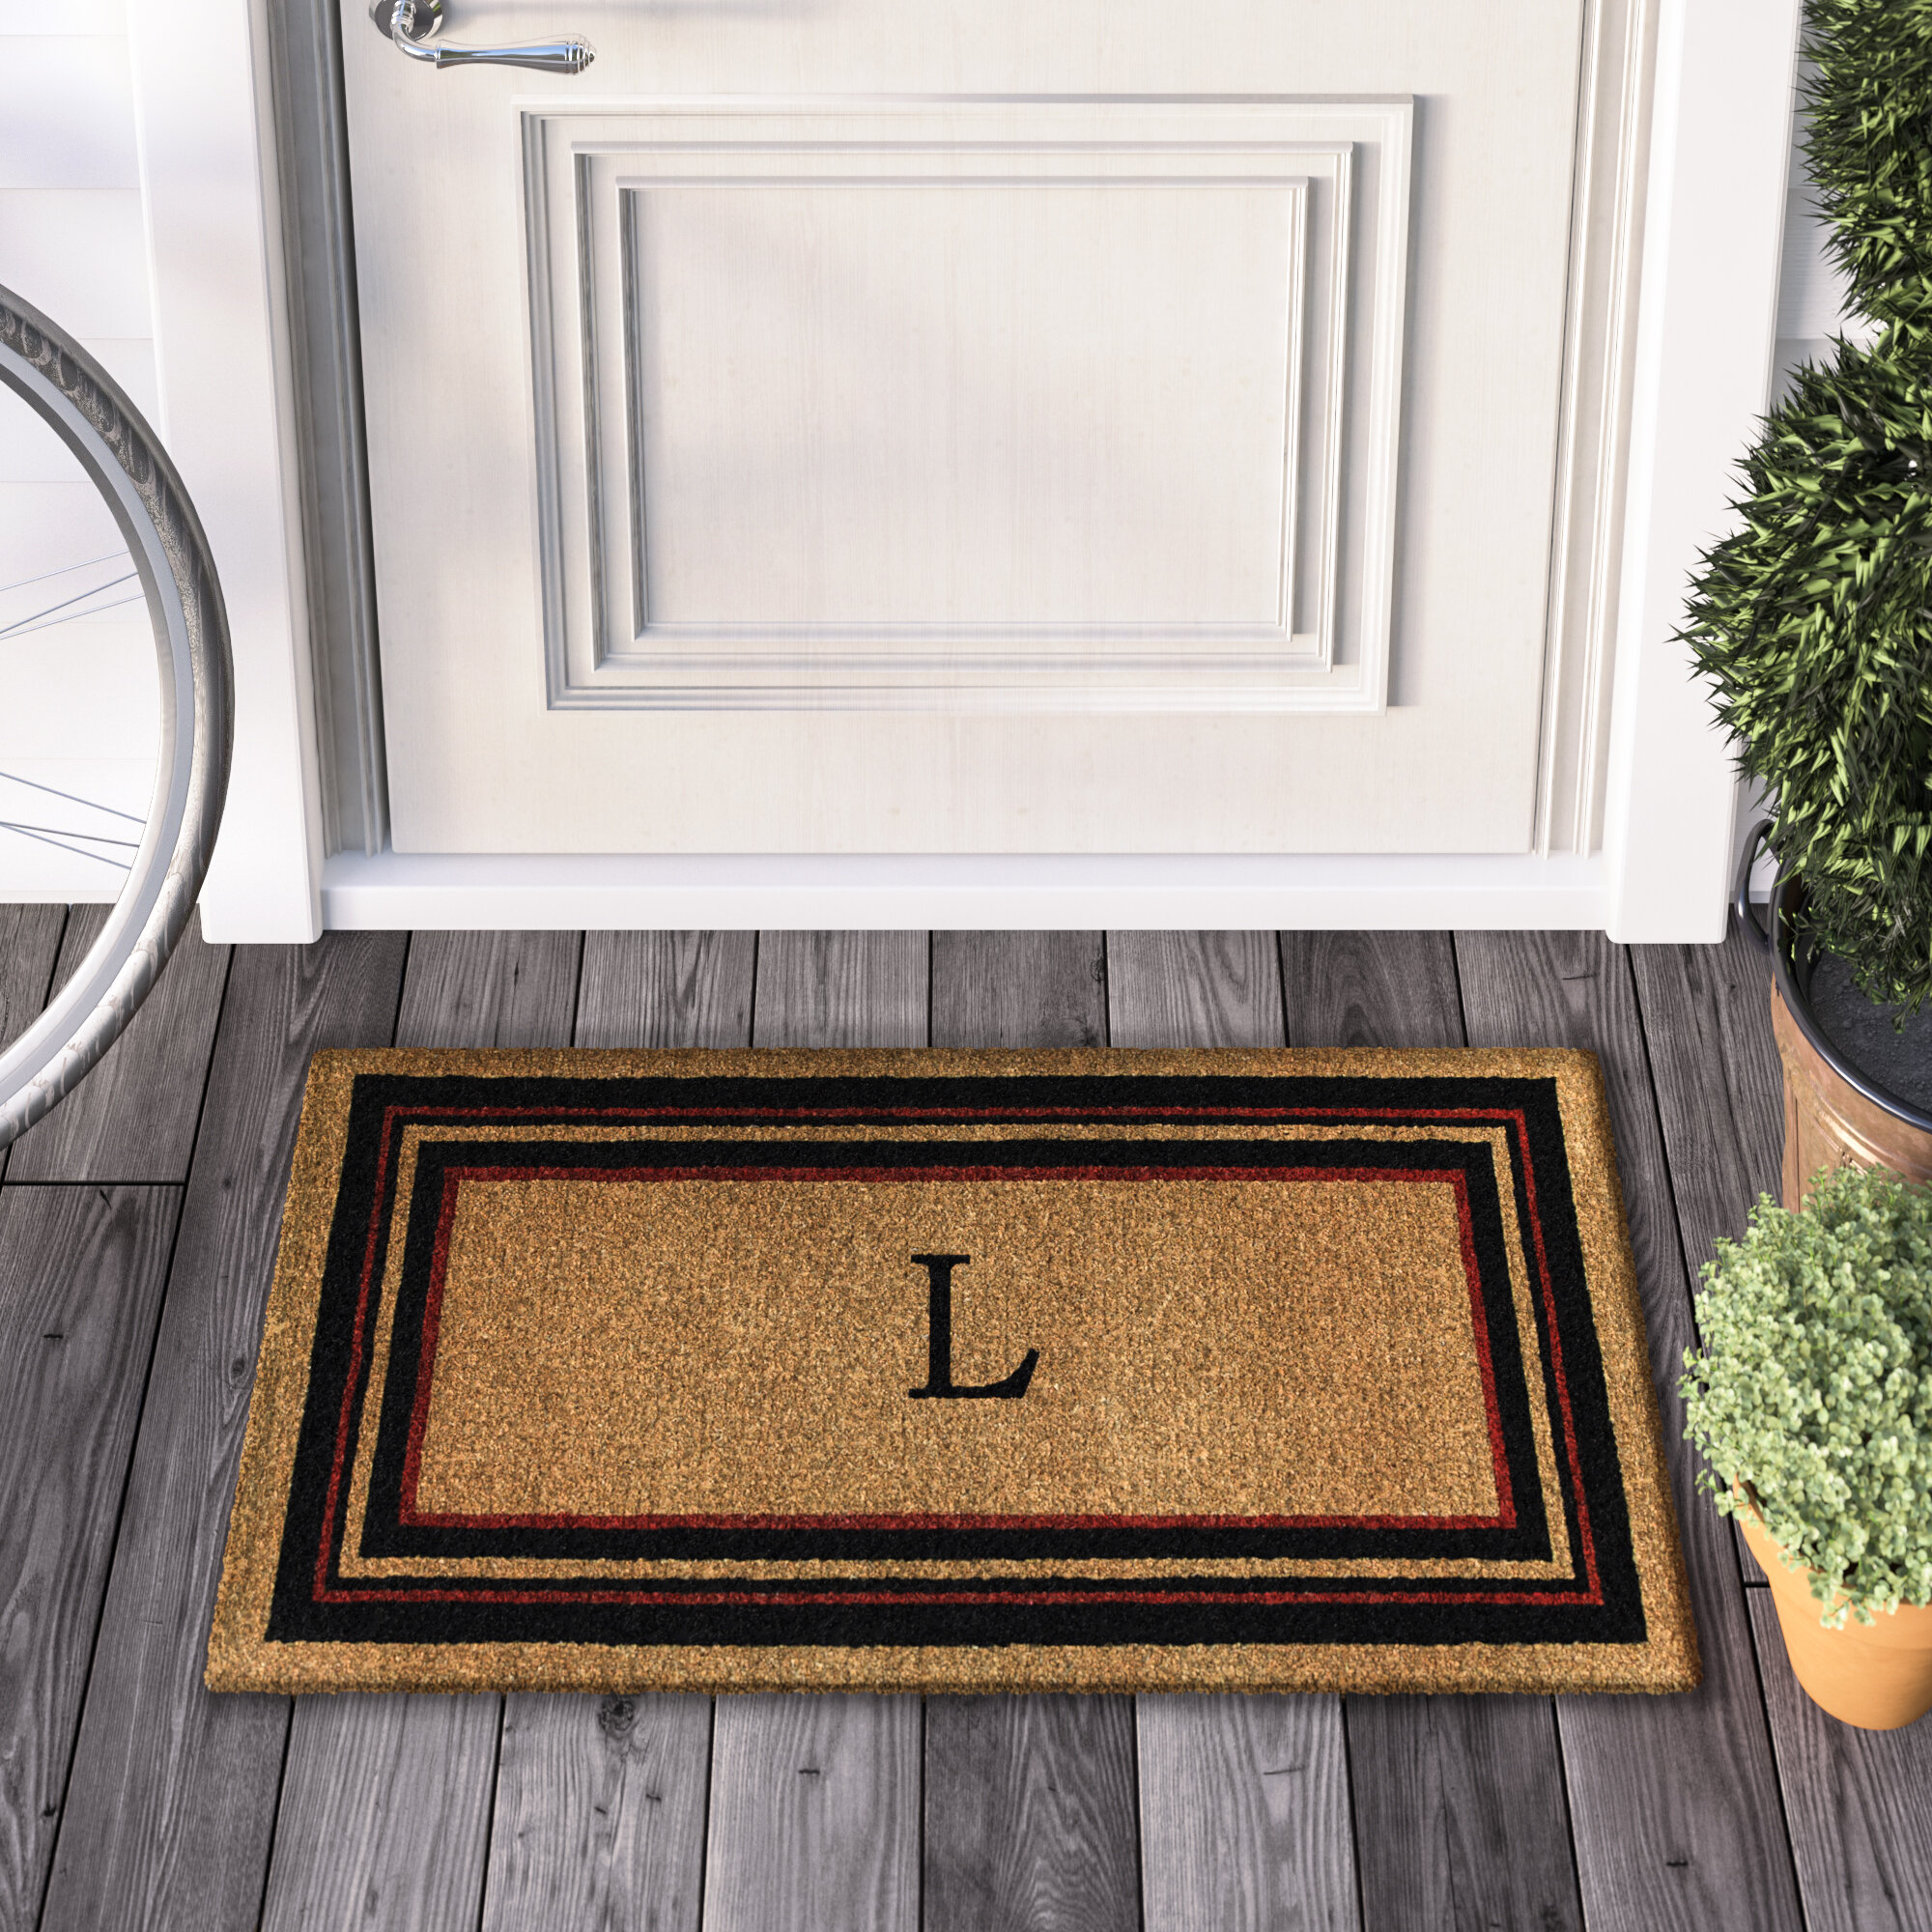 gift seahorse front il beach rug personalized monogram gifts doormat custom mat wedding door house listing ideas fullxfull monogrammed